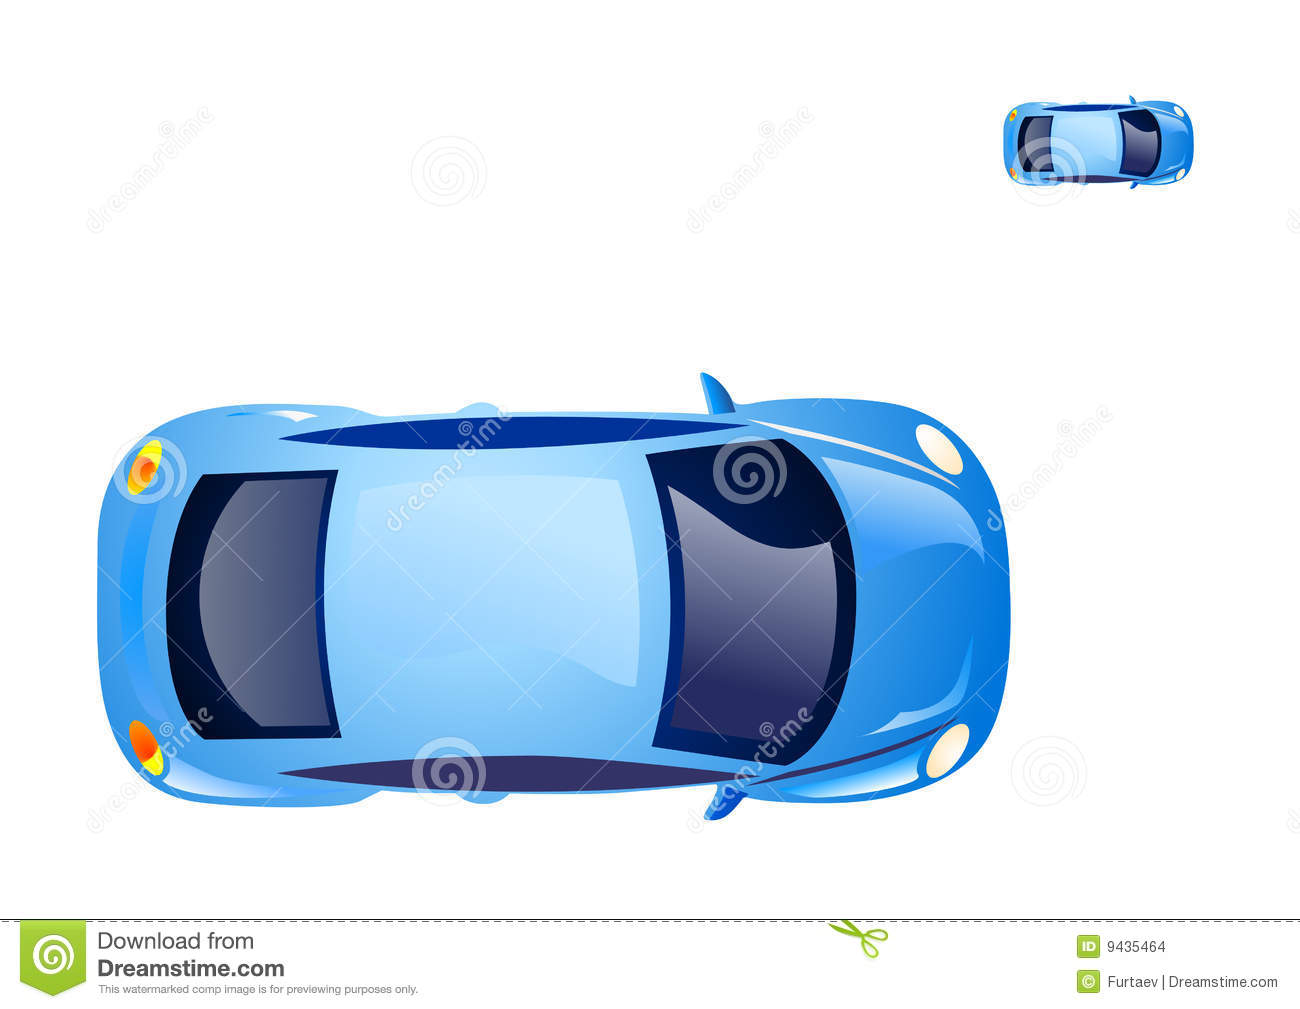 beetle car icon stock images   image 9435464